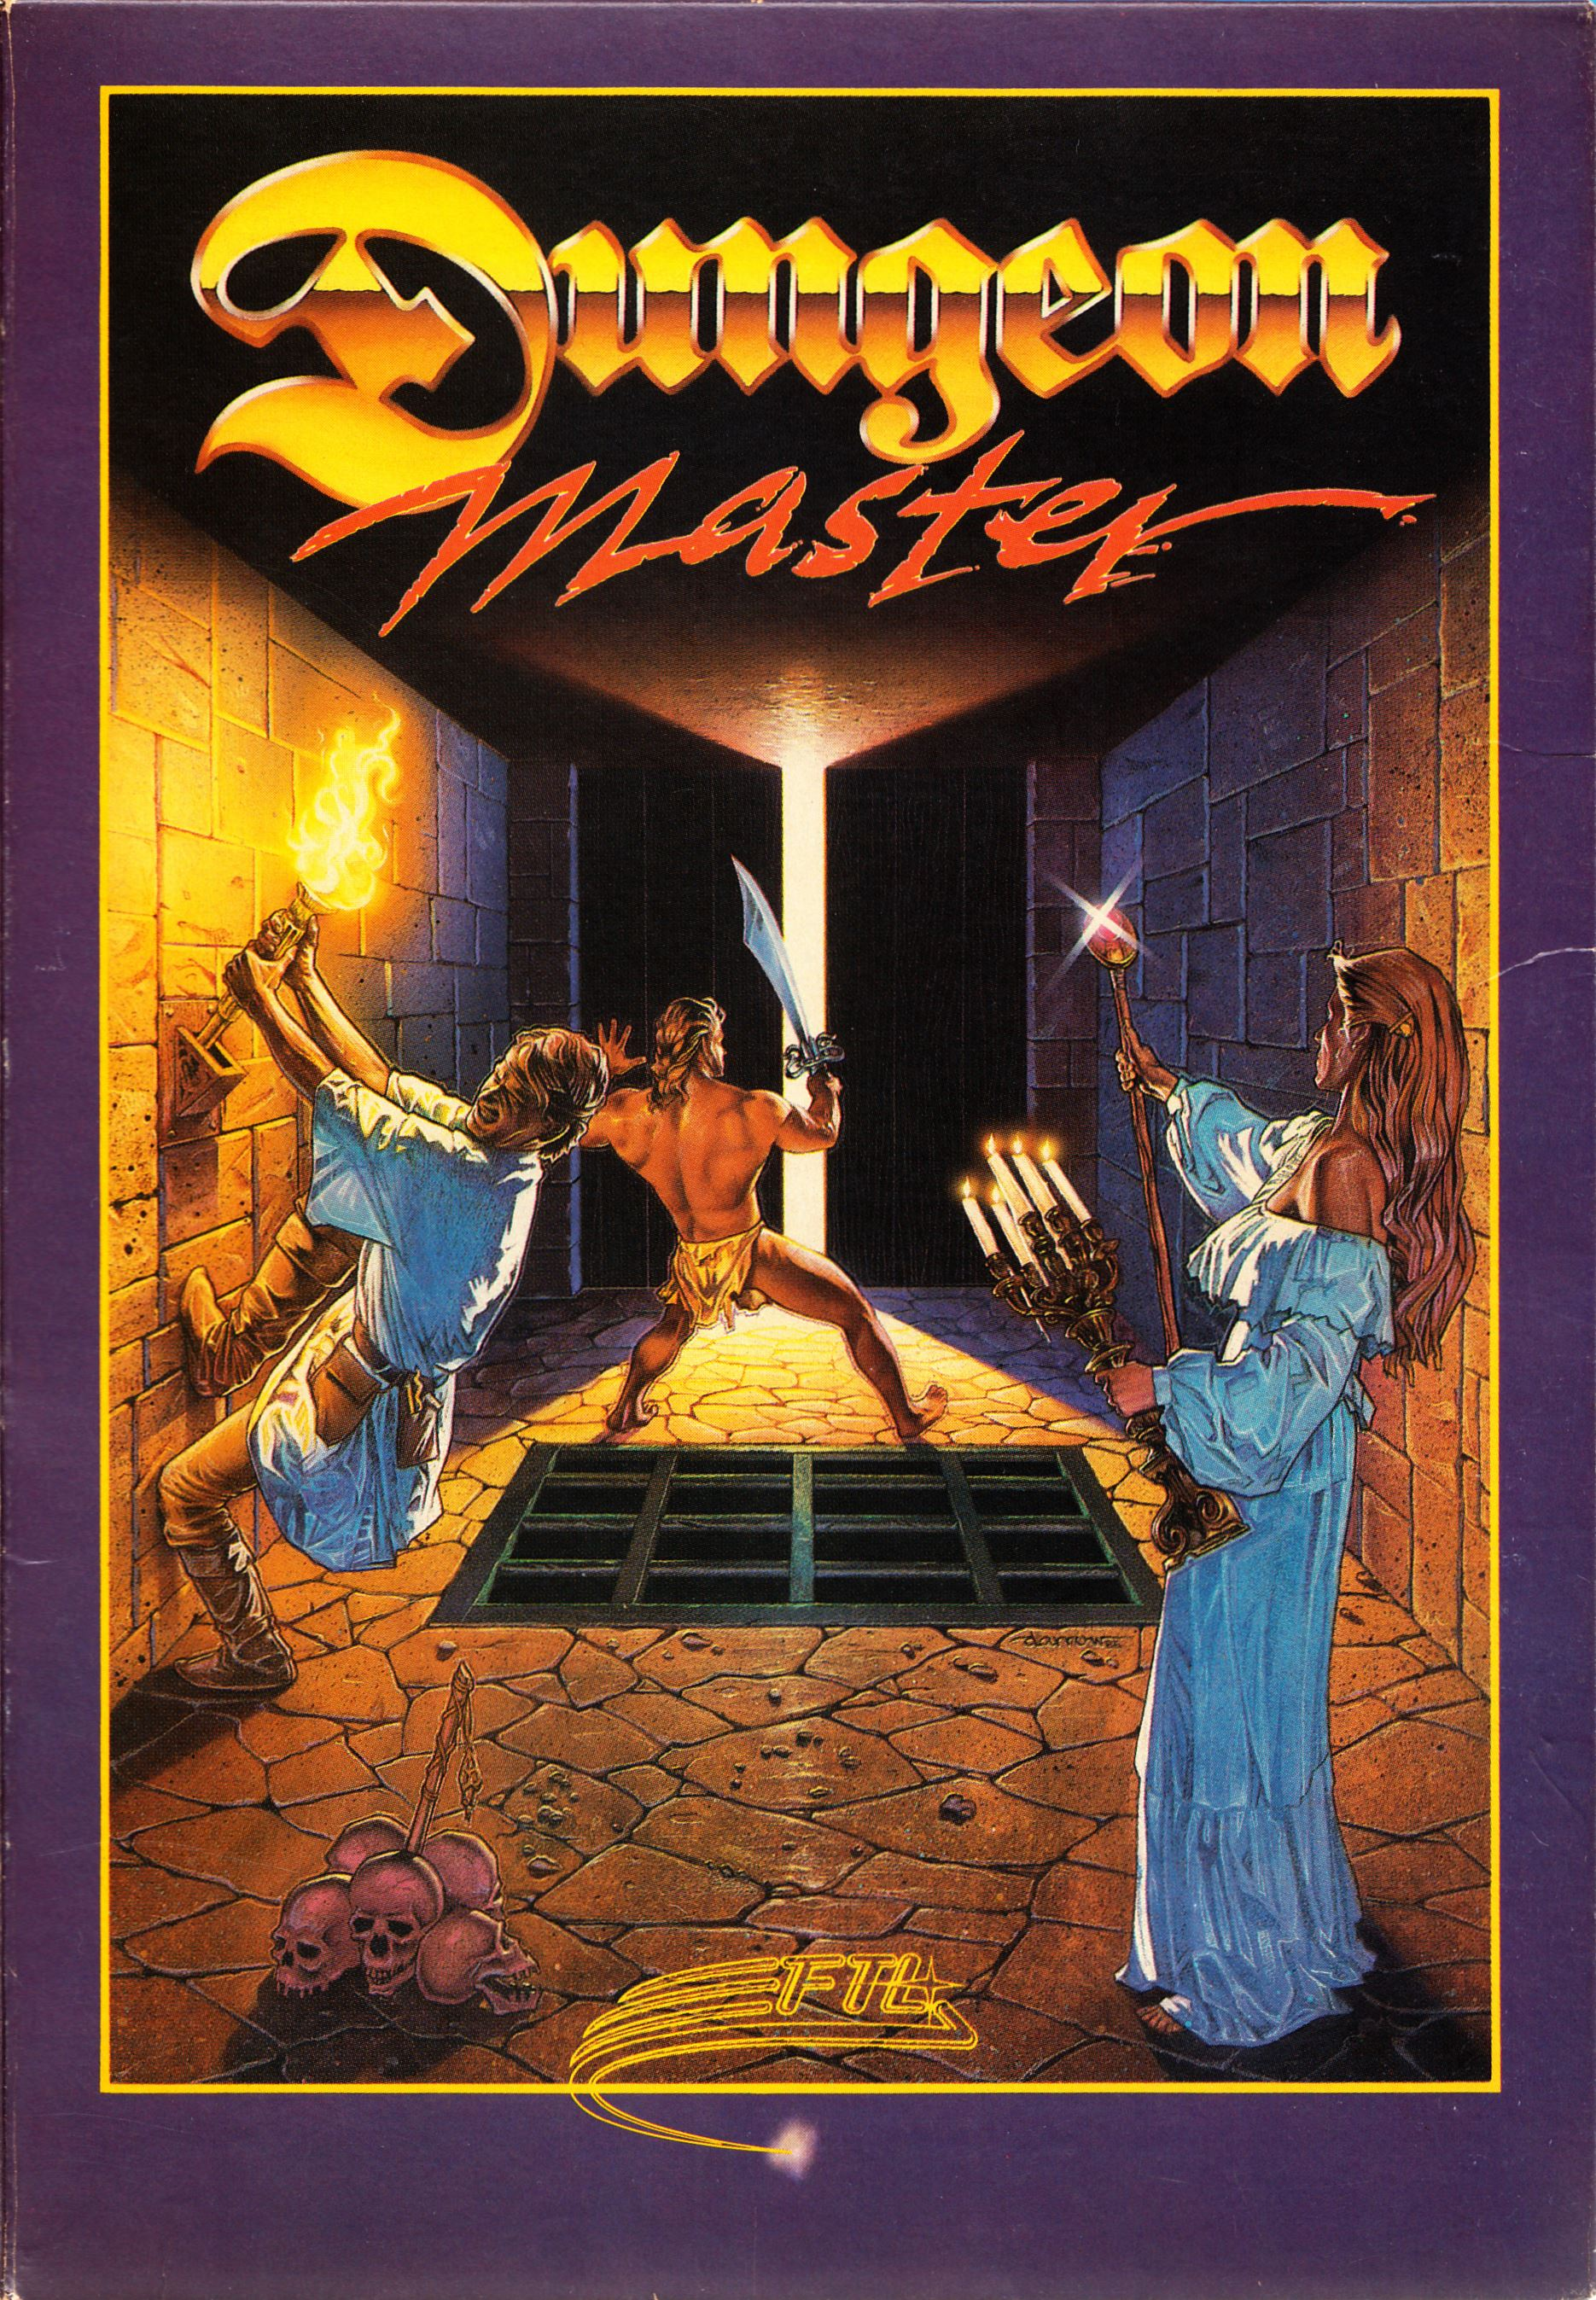 Game - Dungeon Master - US - Atari ST - Early Box - Box - Front - Scan